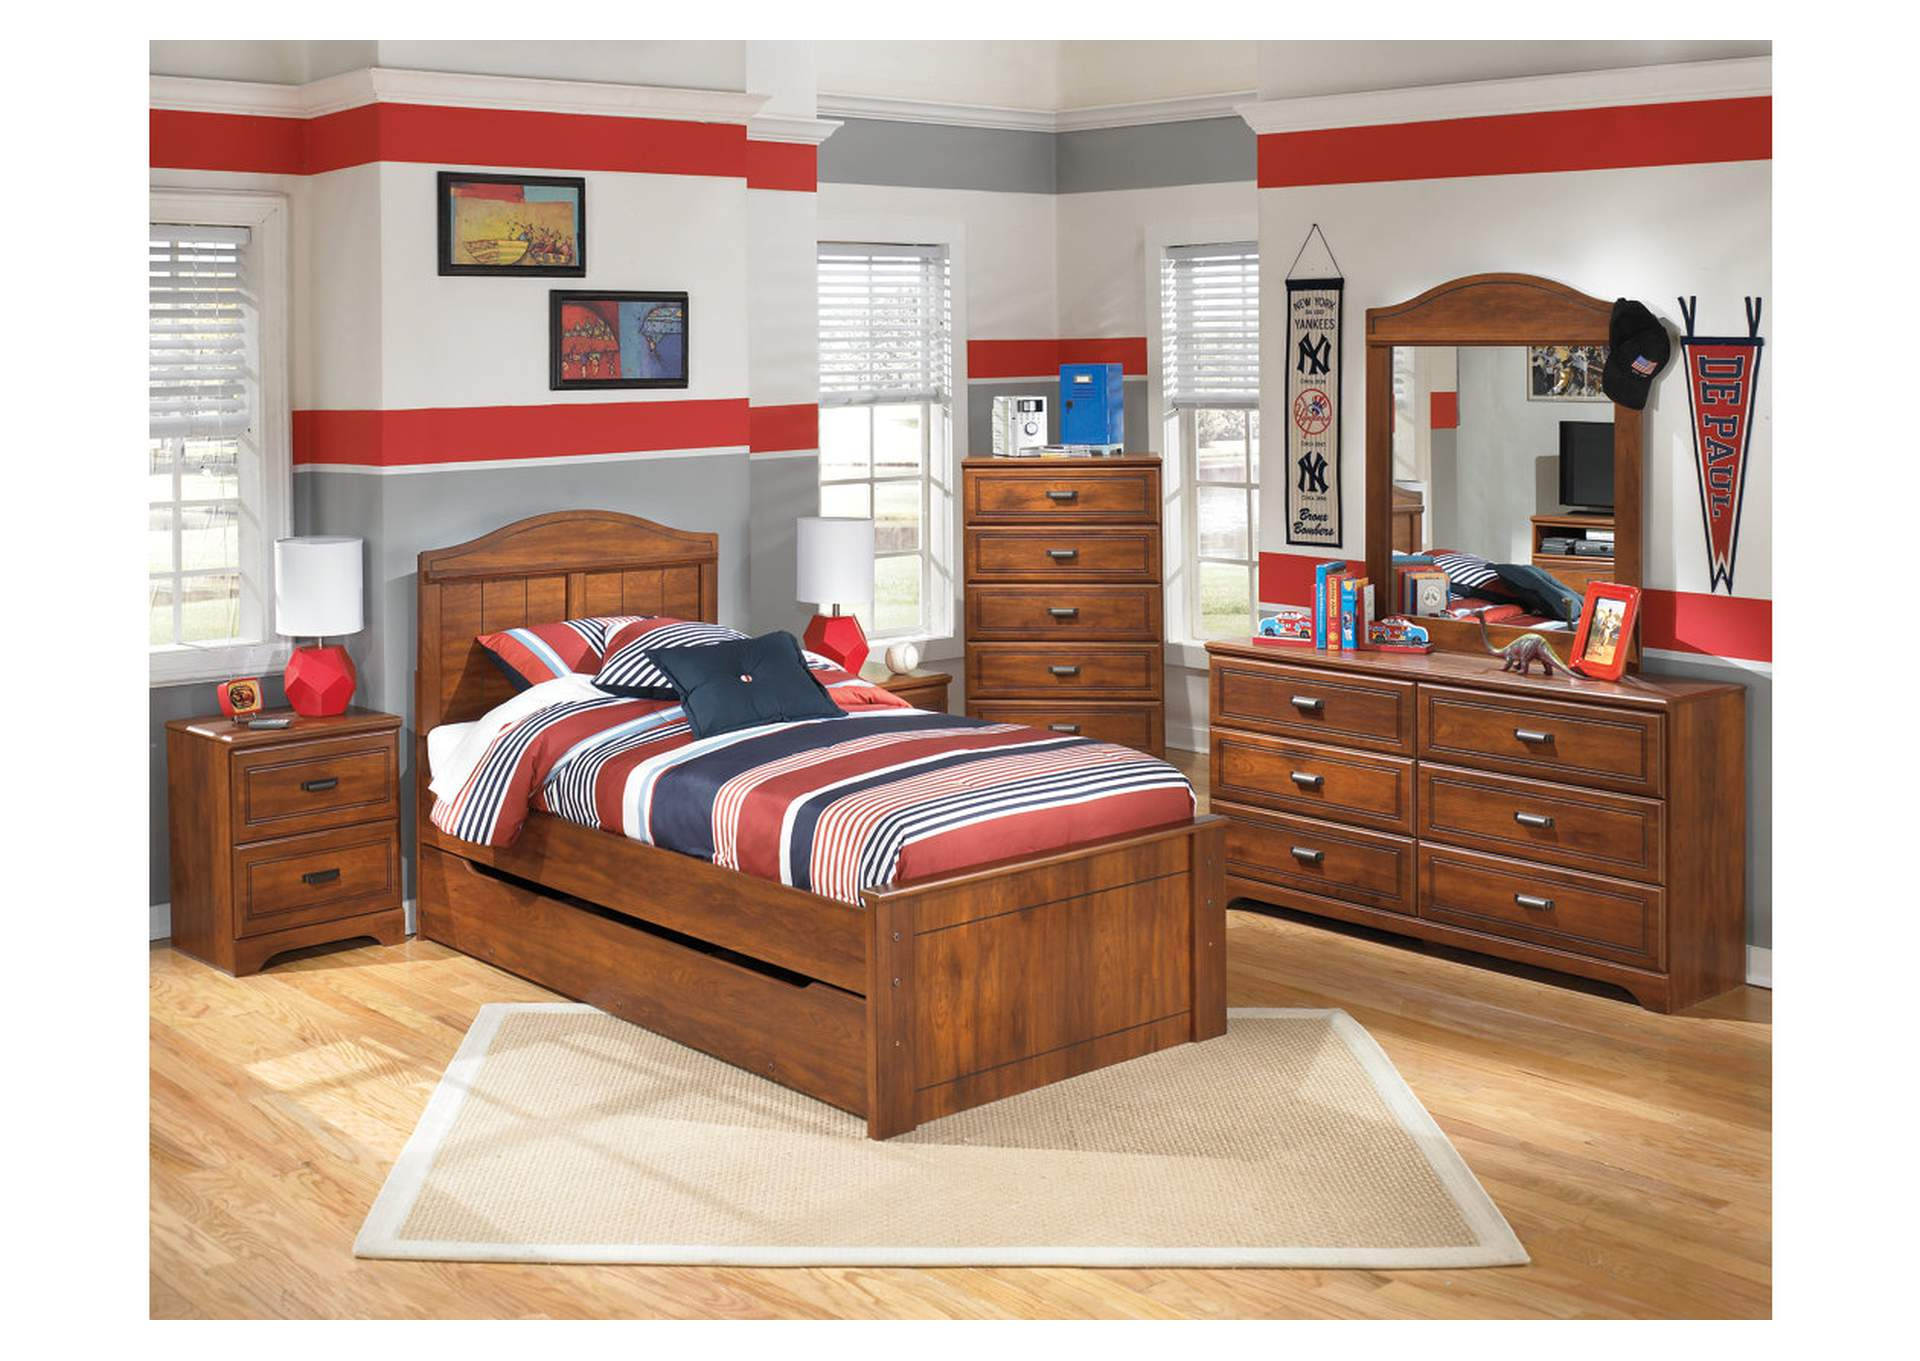 Barchan Twin Panel Trundle Bed w/Dresser & Mirror,Signature Design By Ashley